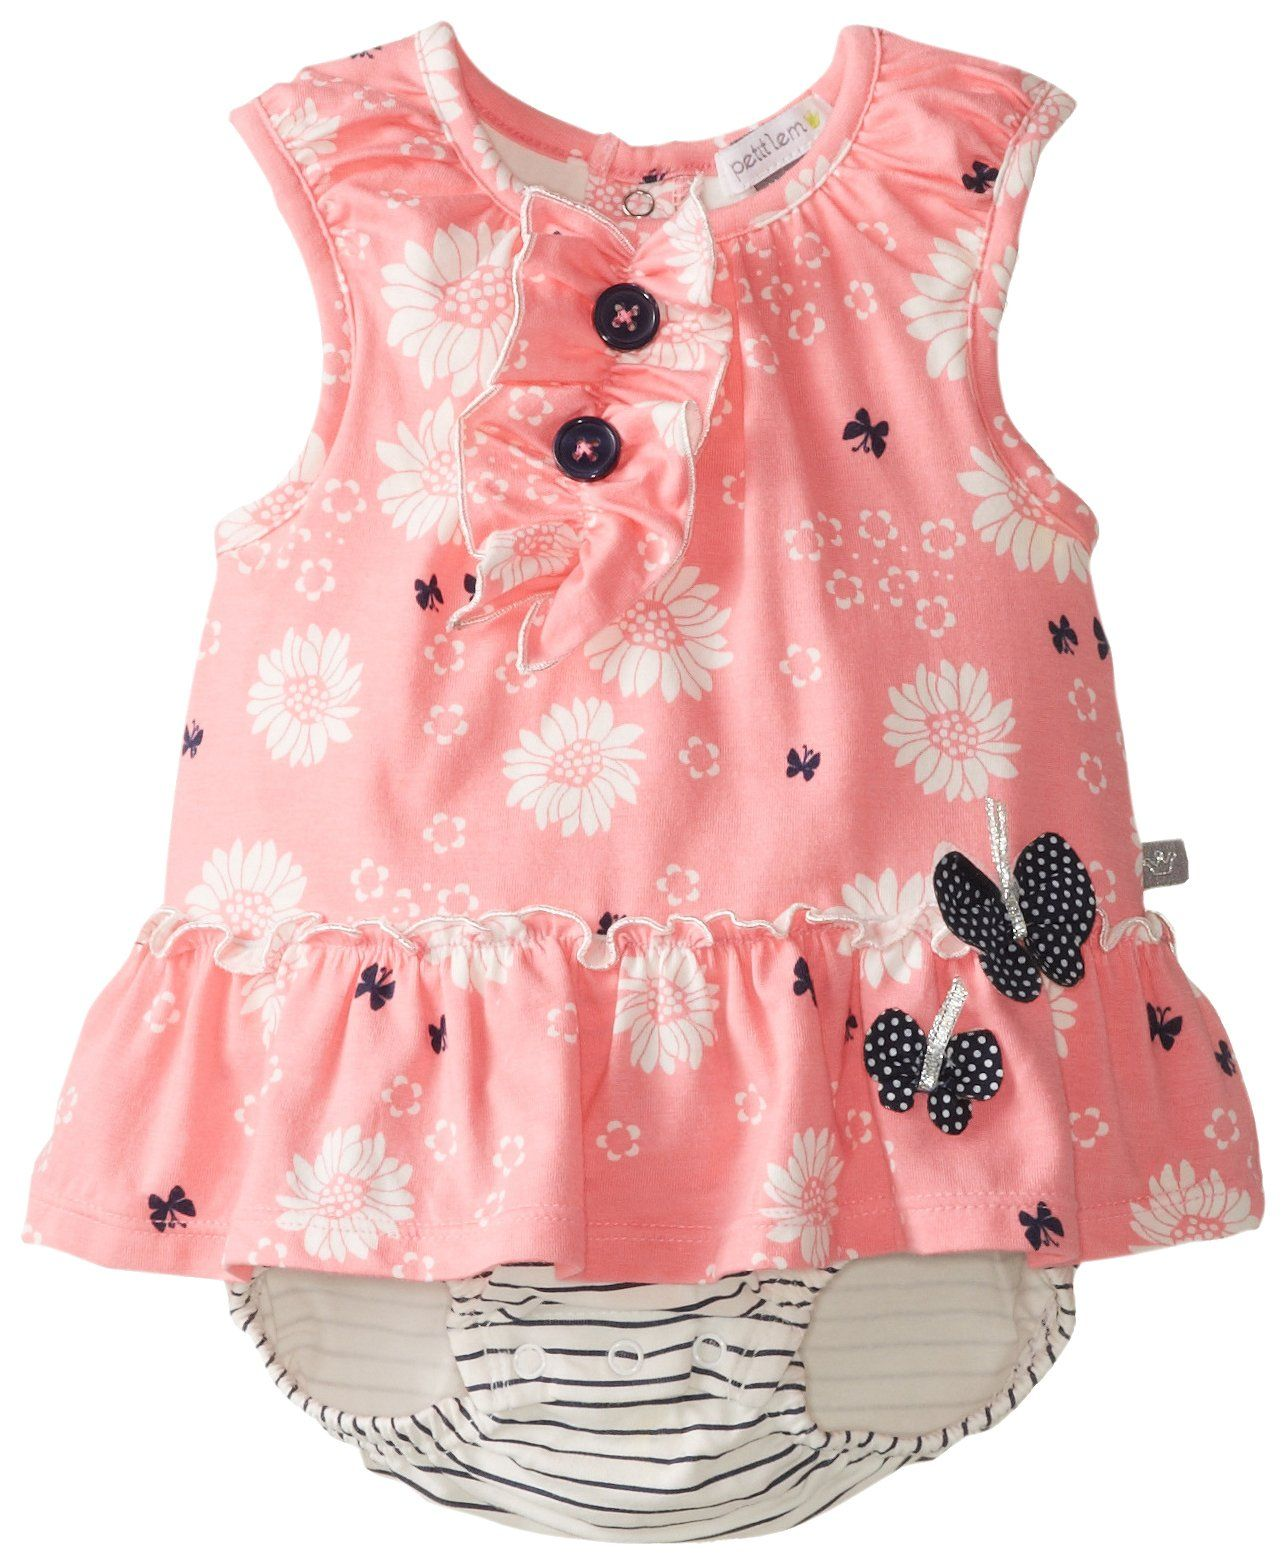 Petit Lem Baby Girls Newborn Summer Souvenir Dress Romper Pink